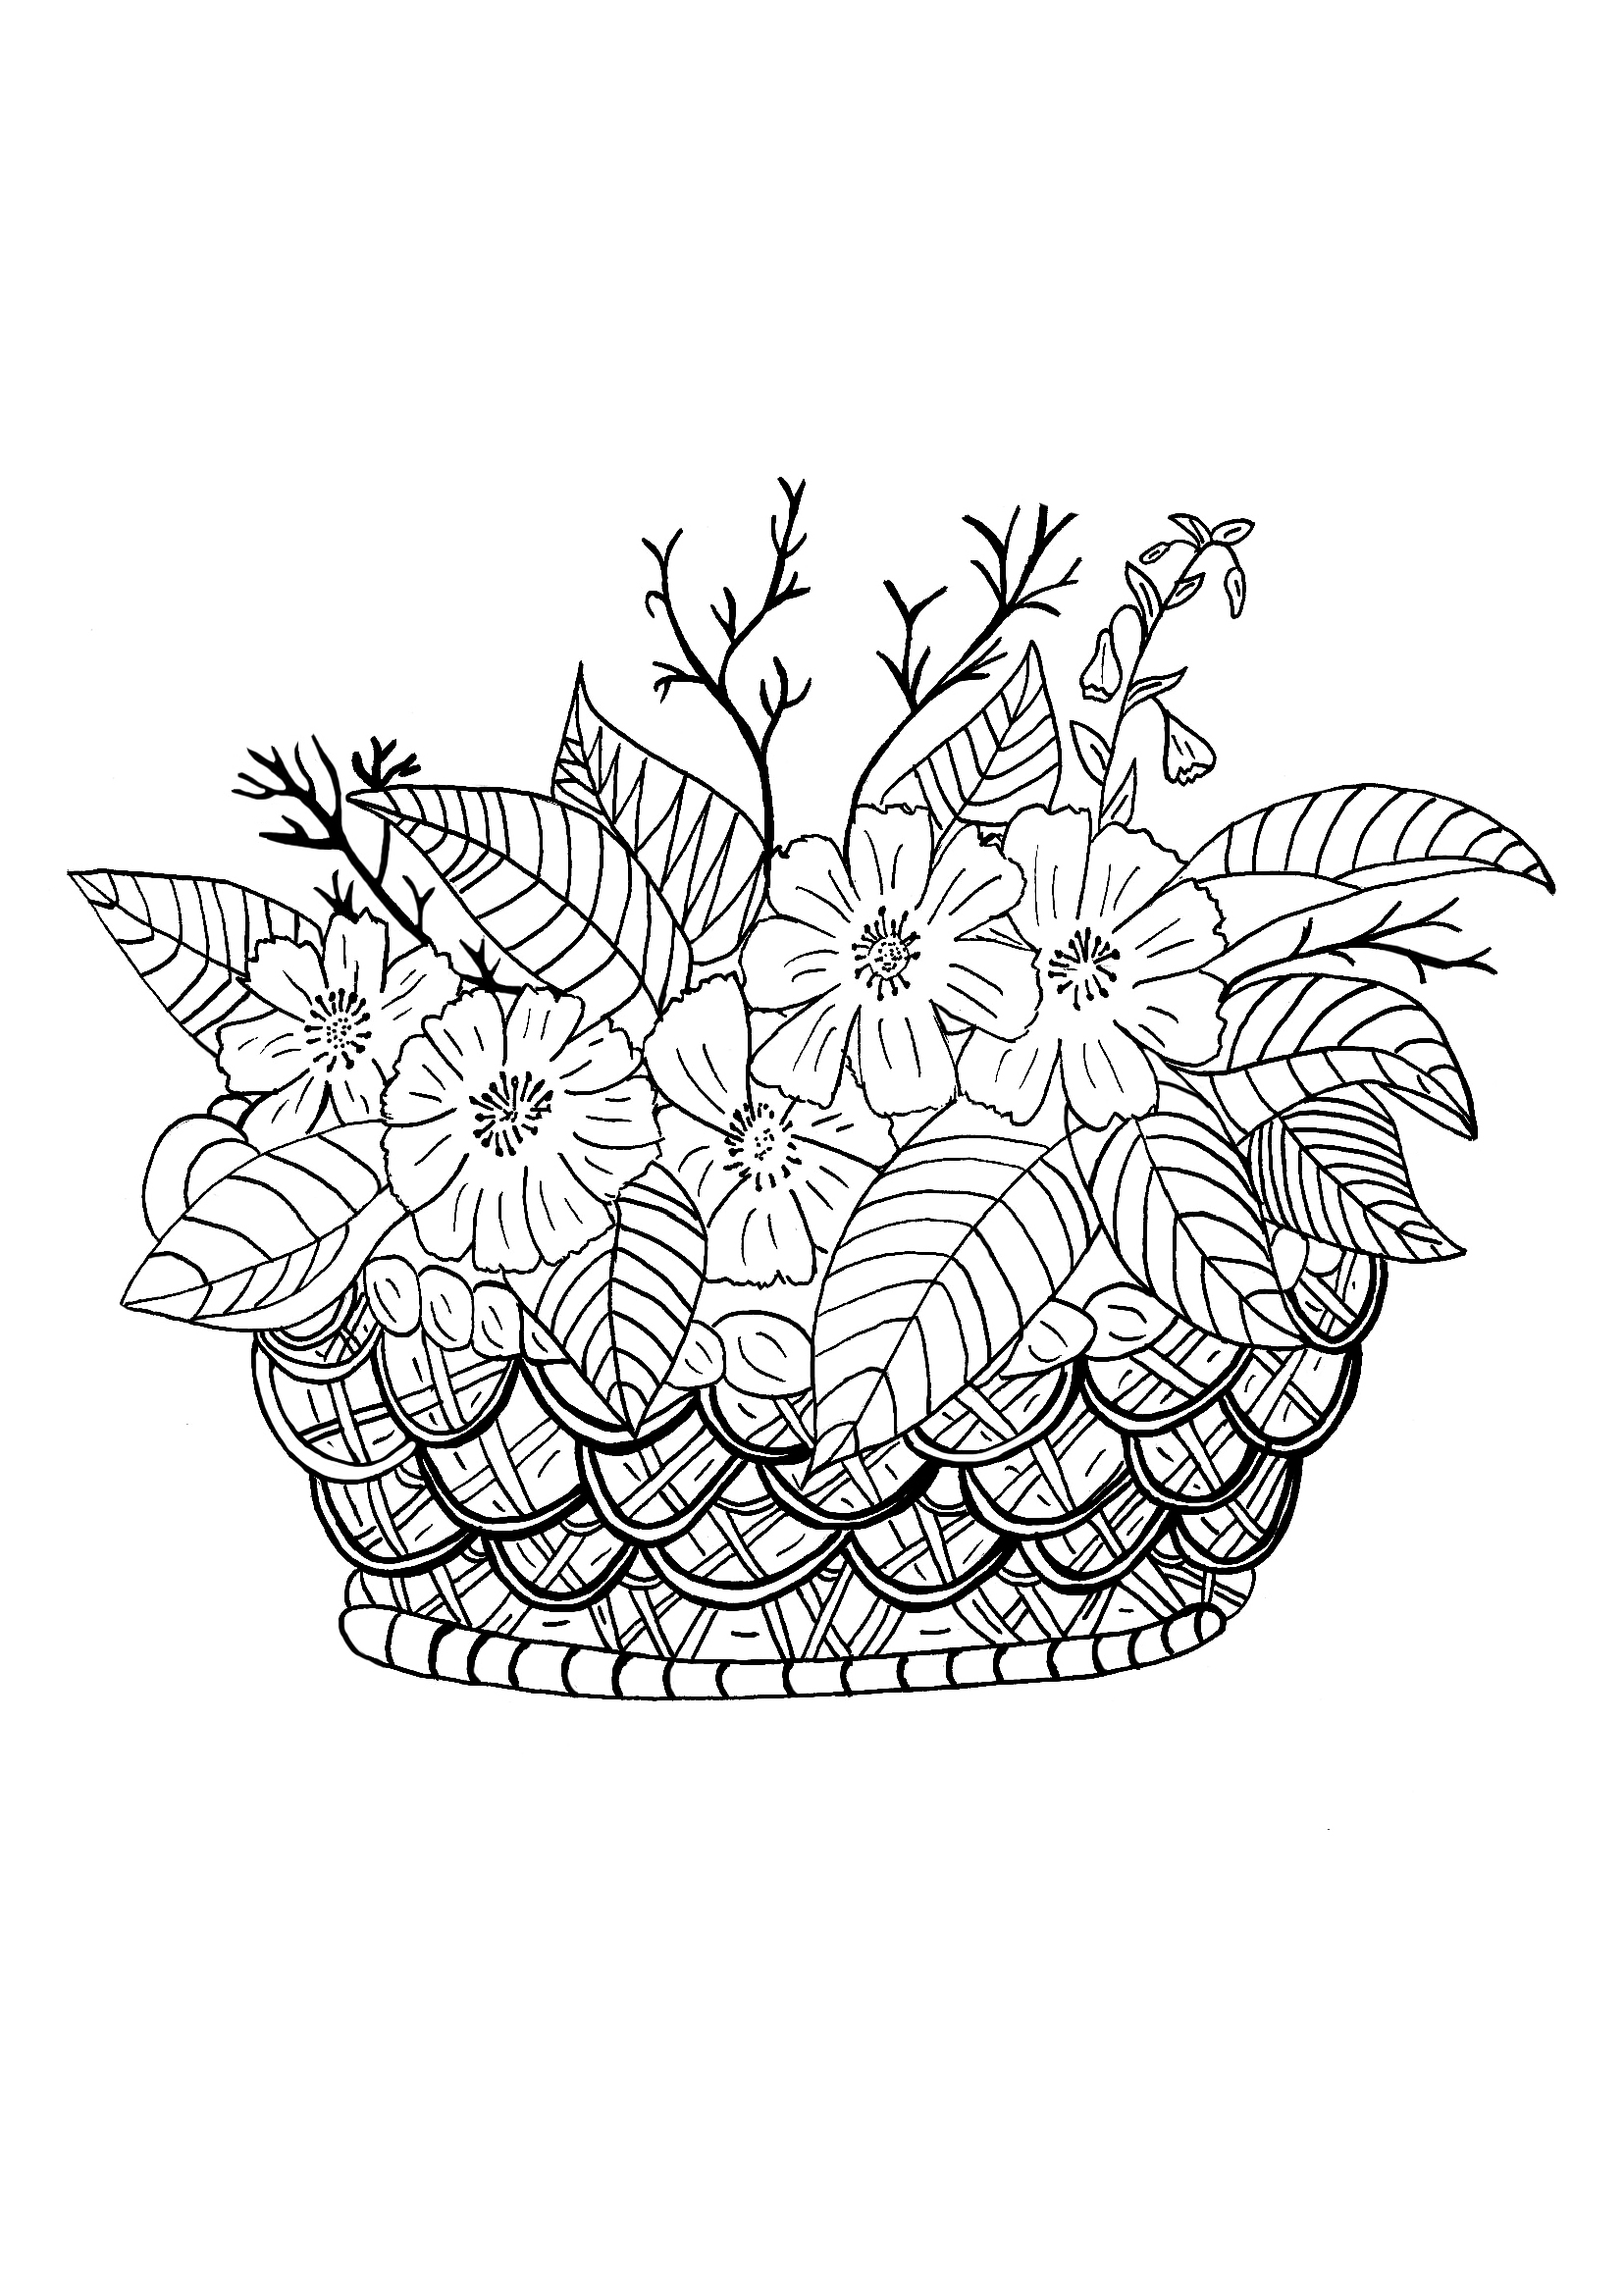 A basket, some flowers and a good moment for a coloring page.